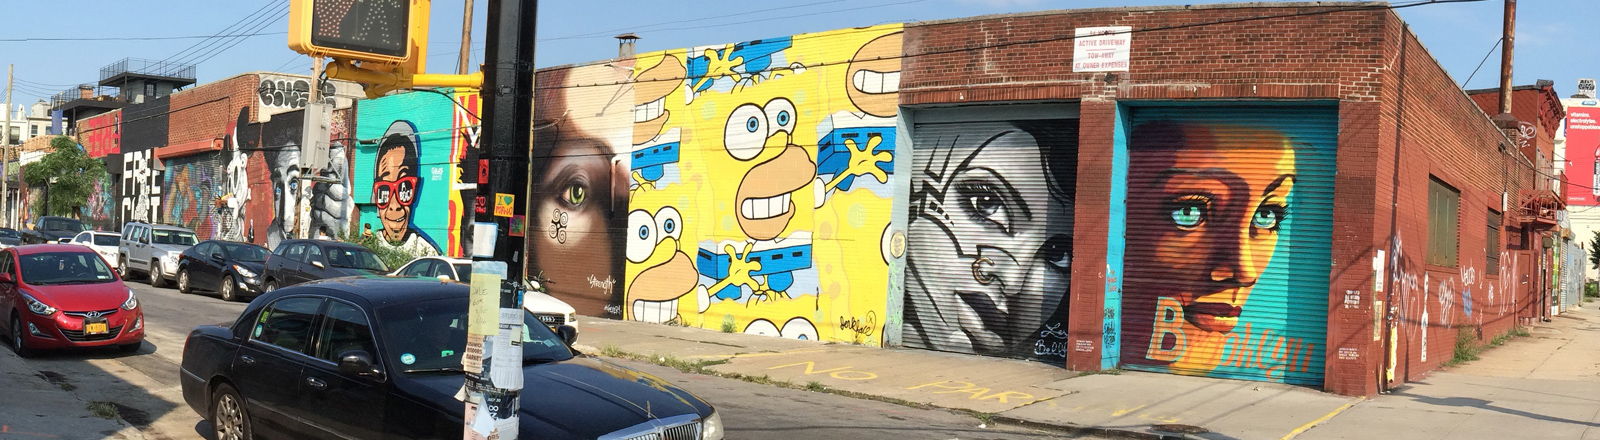 Mural in Bushwick, Brooklyn, New York